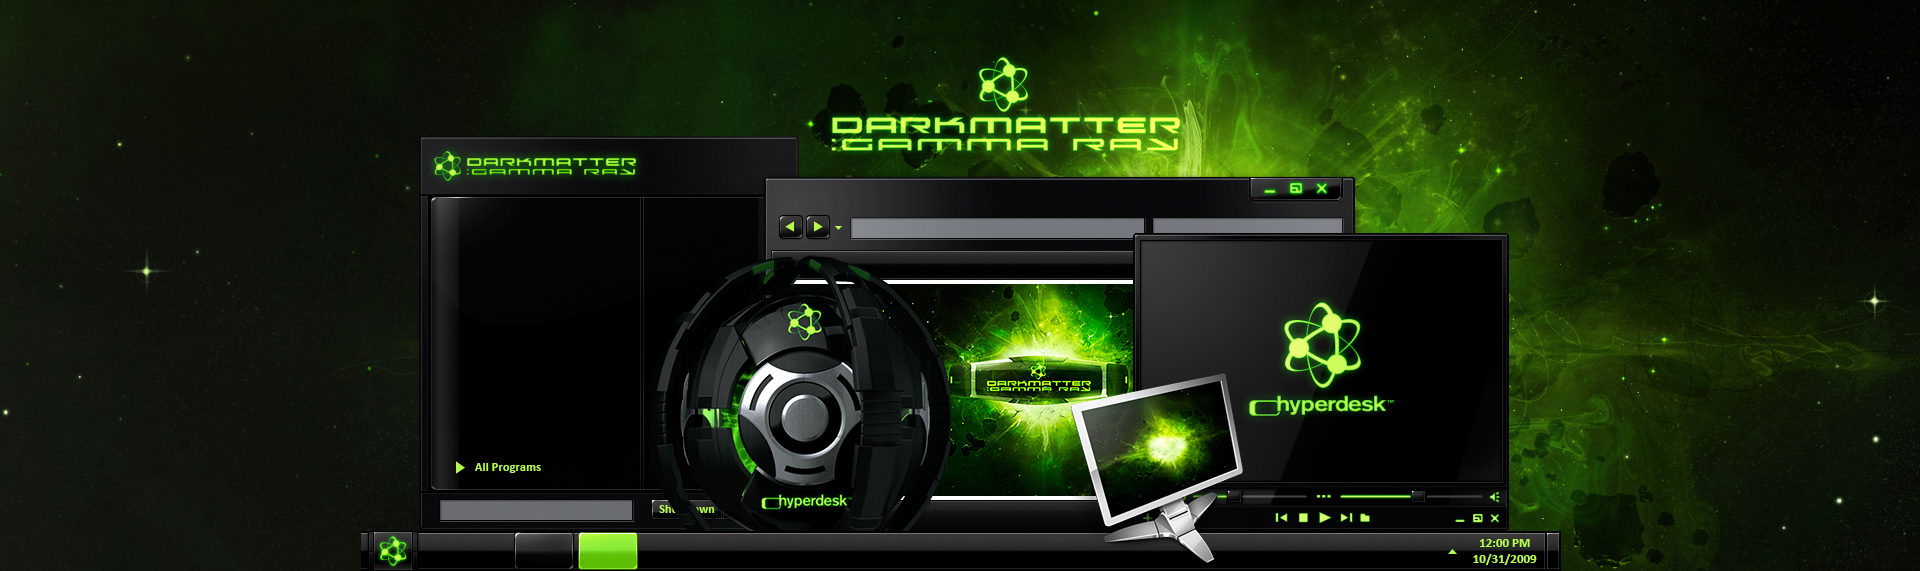 DarkMatter: Gamma Ray  Client: The Skins Factory  From the artists who created Alienware's phenomenally popular desktop themes comes an invasion of galactically cool desktops - DarkMatter: Quadrilogy. DarkMatter: Gamma Ray, is an unbelievably slick hypersuite that completely transforms Windows XP / Vista / 7, into a super-futuristic, hi-tech environment. Hyperdesk's DarkMatter: Subspace contains: an icon set, custom Wallpapers, Windows Media Player skin & a dynamic, animated iTunes / WMP audio remote widget. This desktop theme is no longer available.